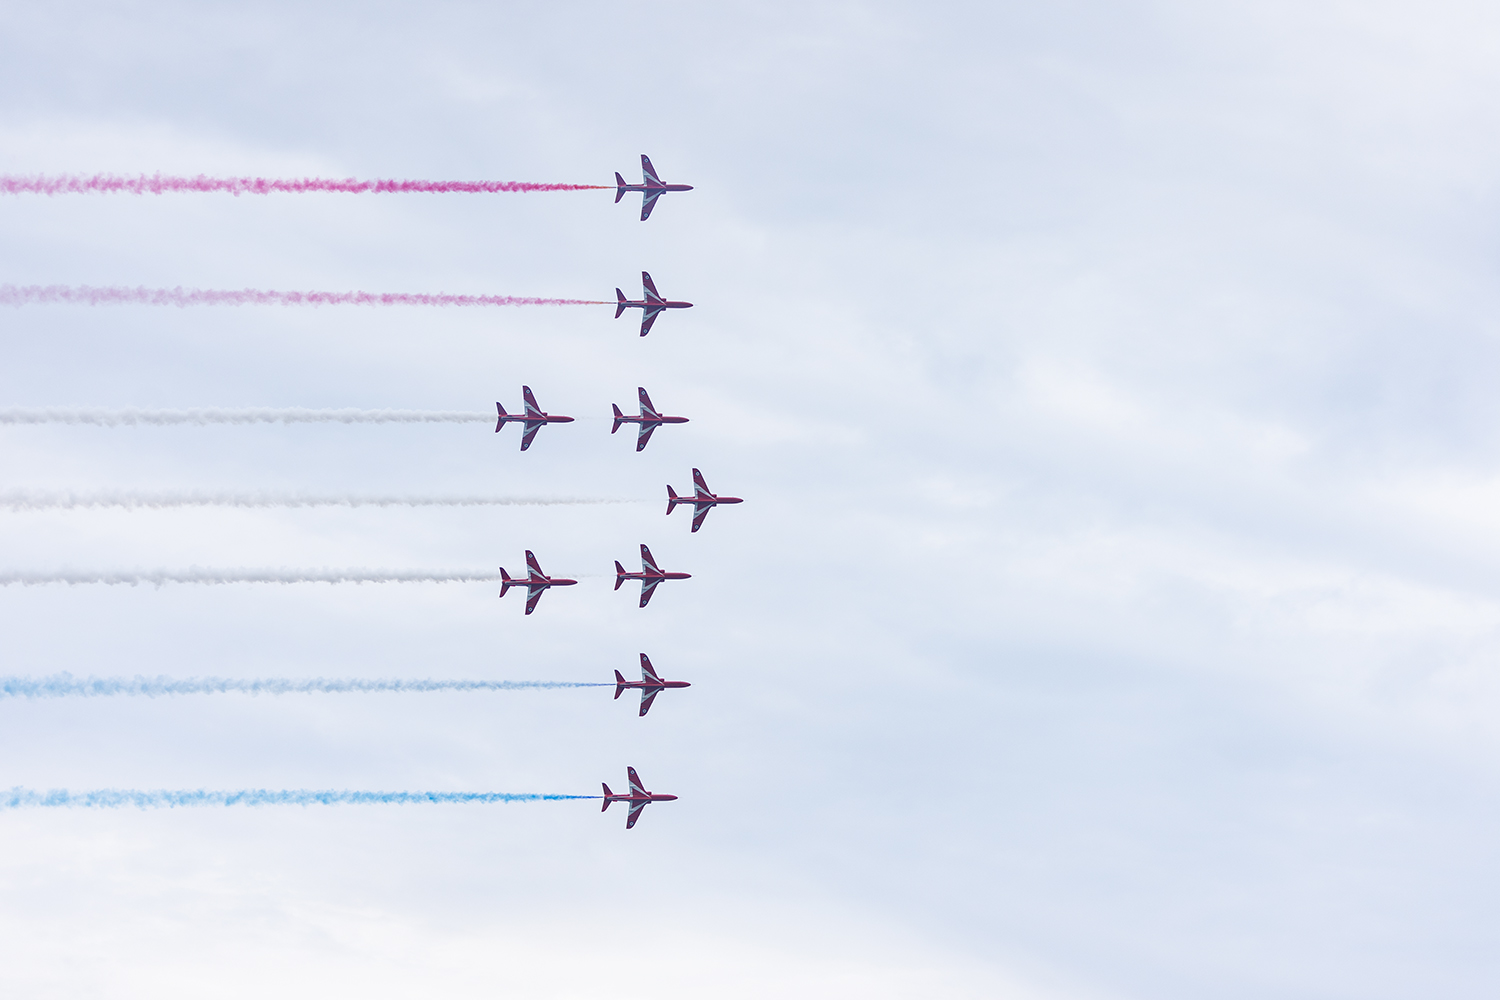 The+Royal+Air+Force+Aerobatic+Team%2C+known+as+the+Red+Arrows%2C+performed+their+first+demonstation+in+North+America+Aug.+17.